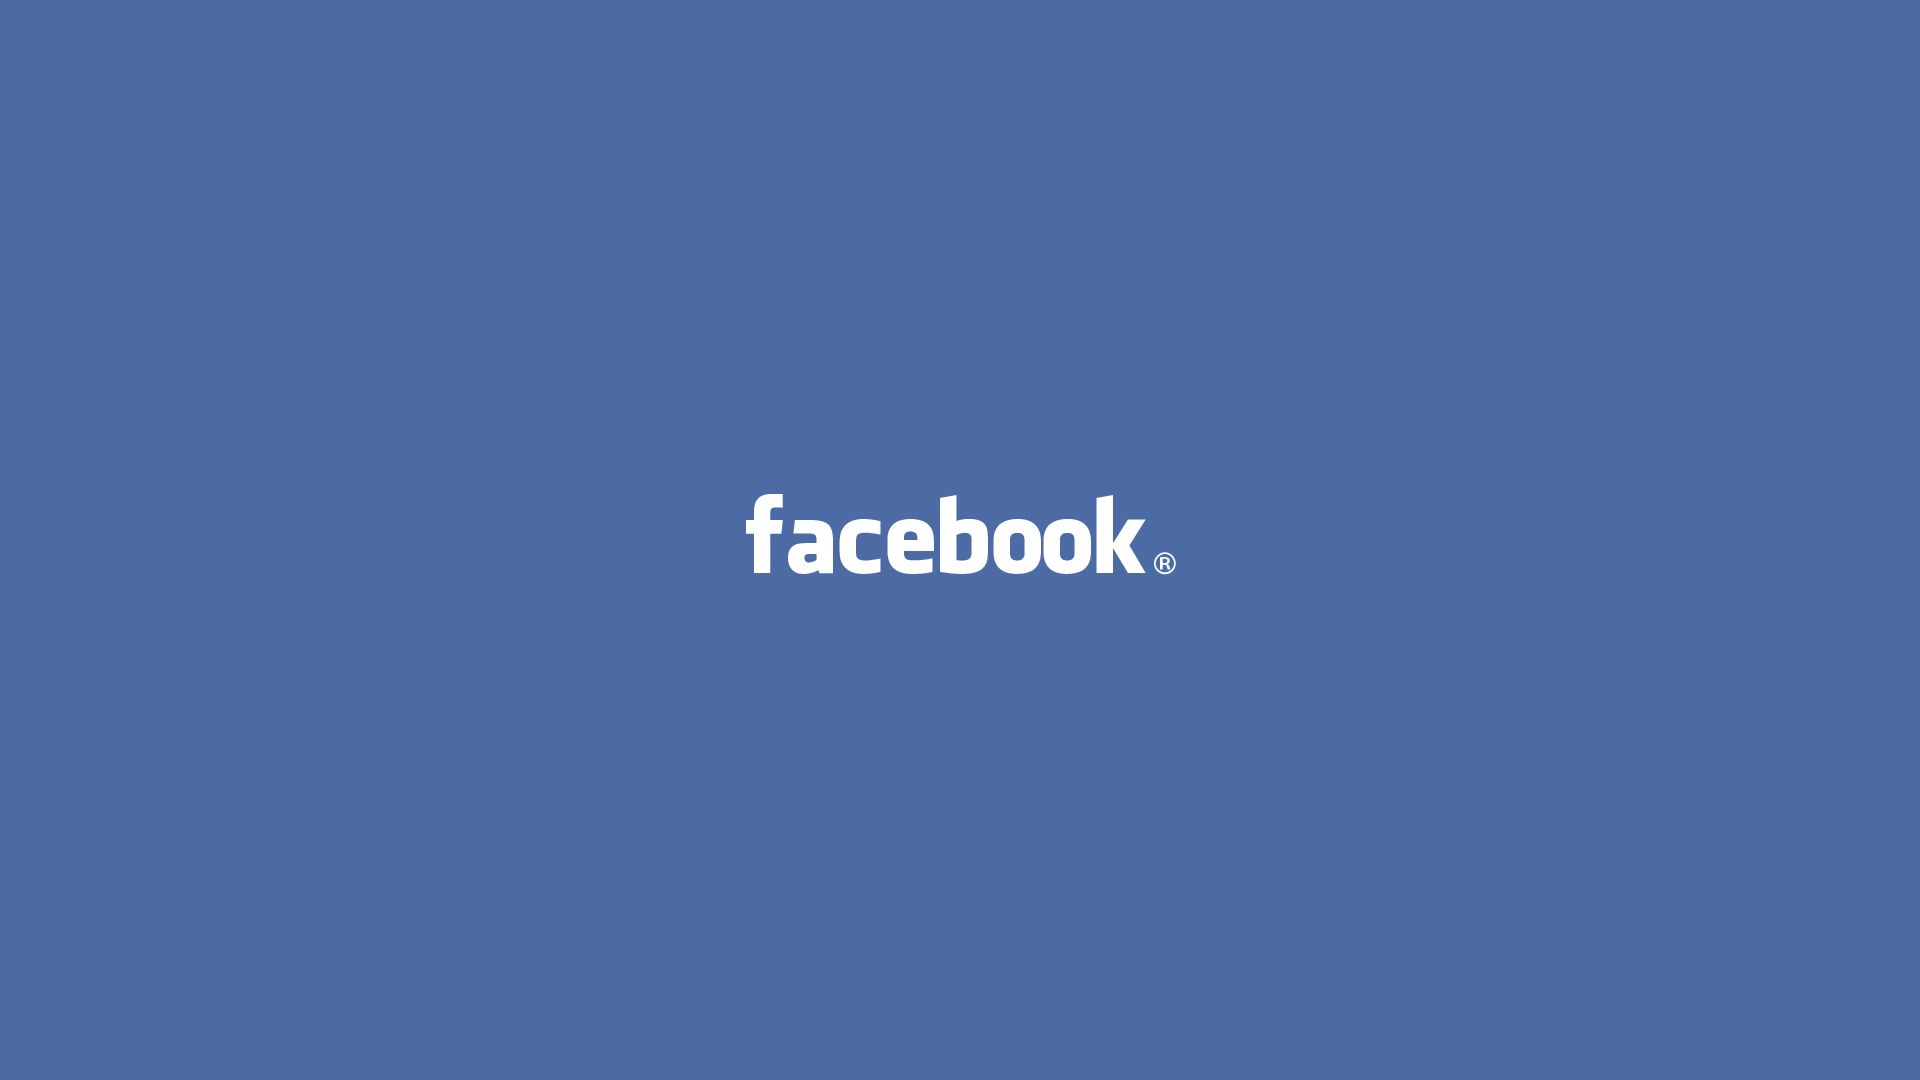 Facebook Wallpaper HD Pictures One HD Wallpaper Pictures